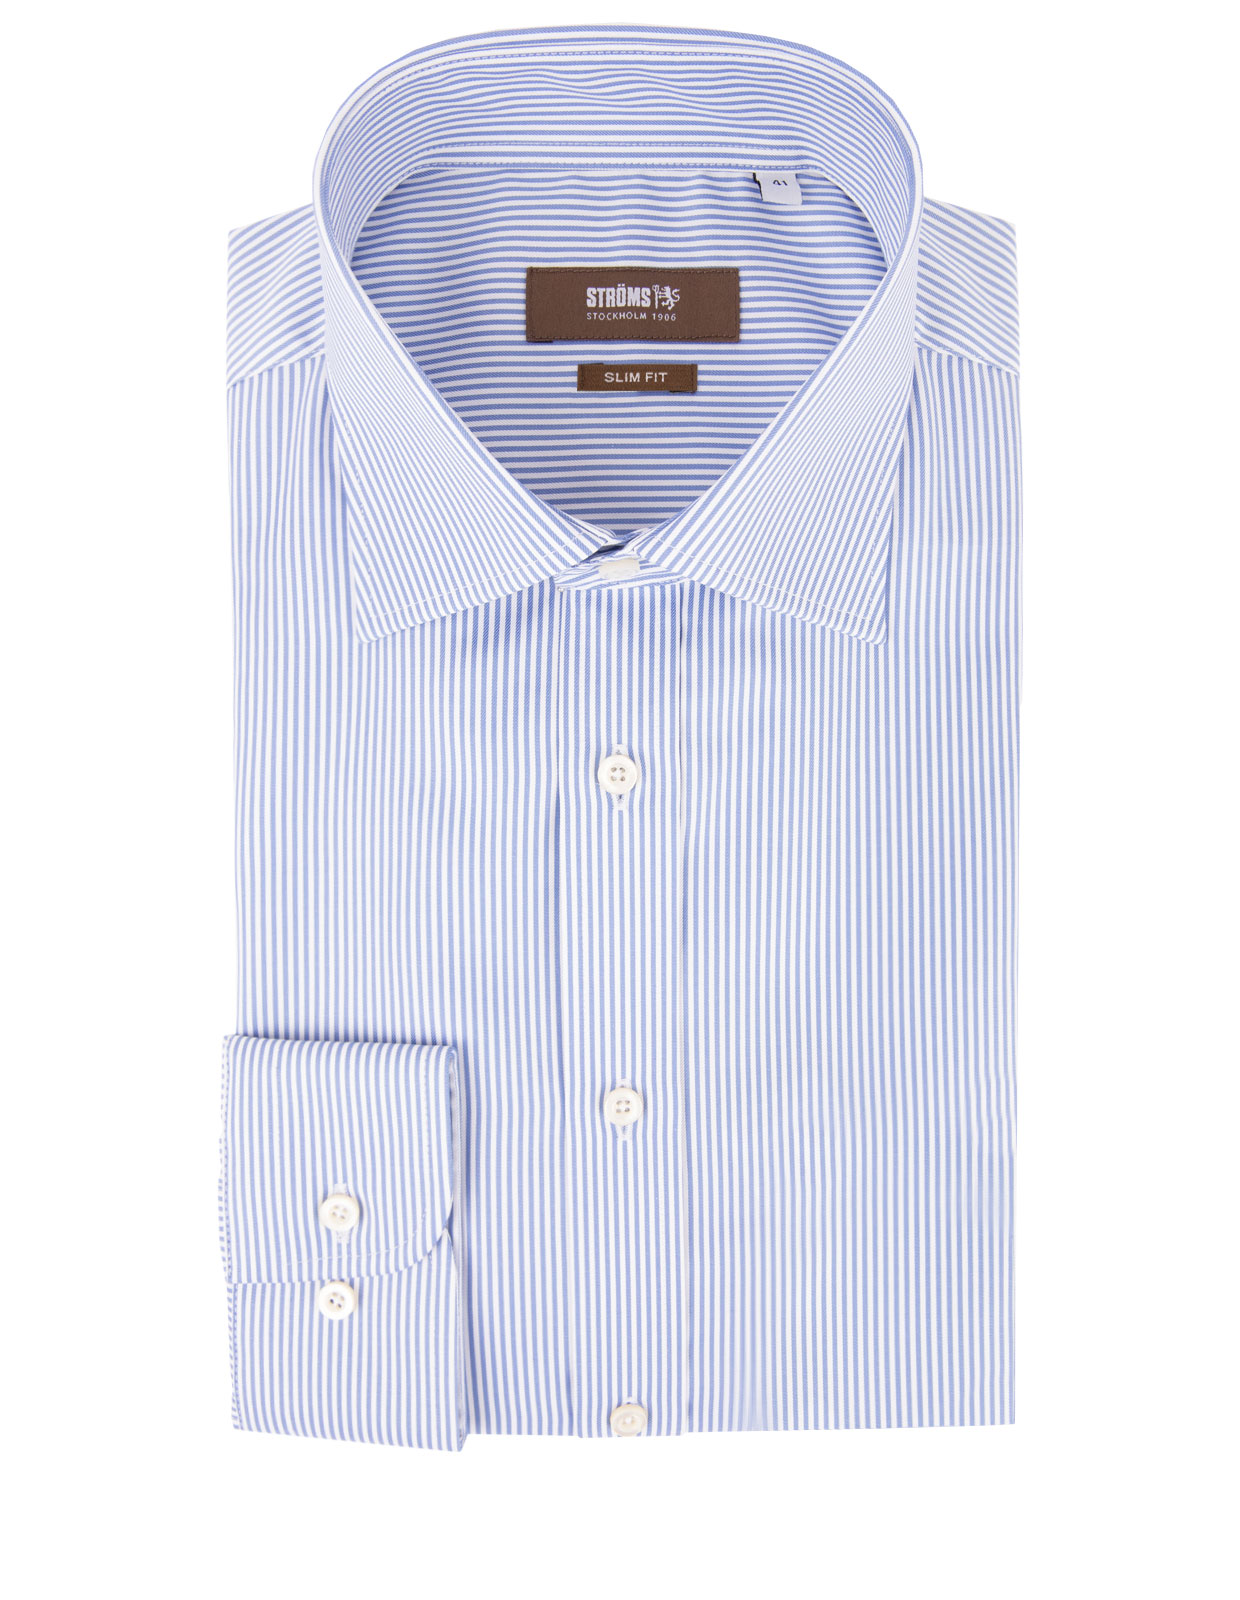 Slim Fit Cotton Shirt Stripe Blue/White